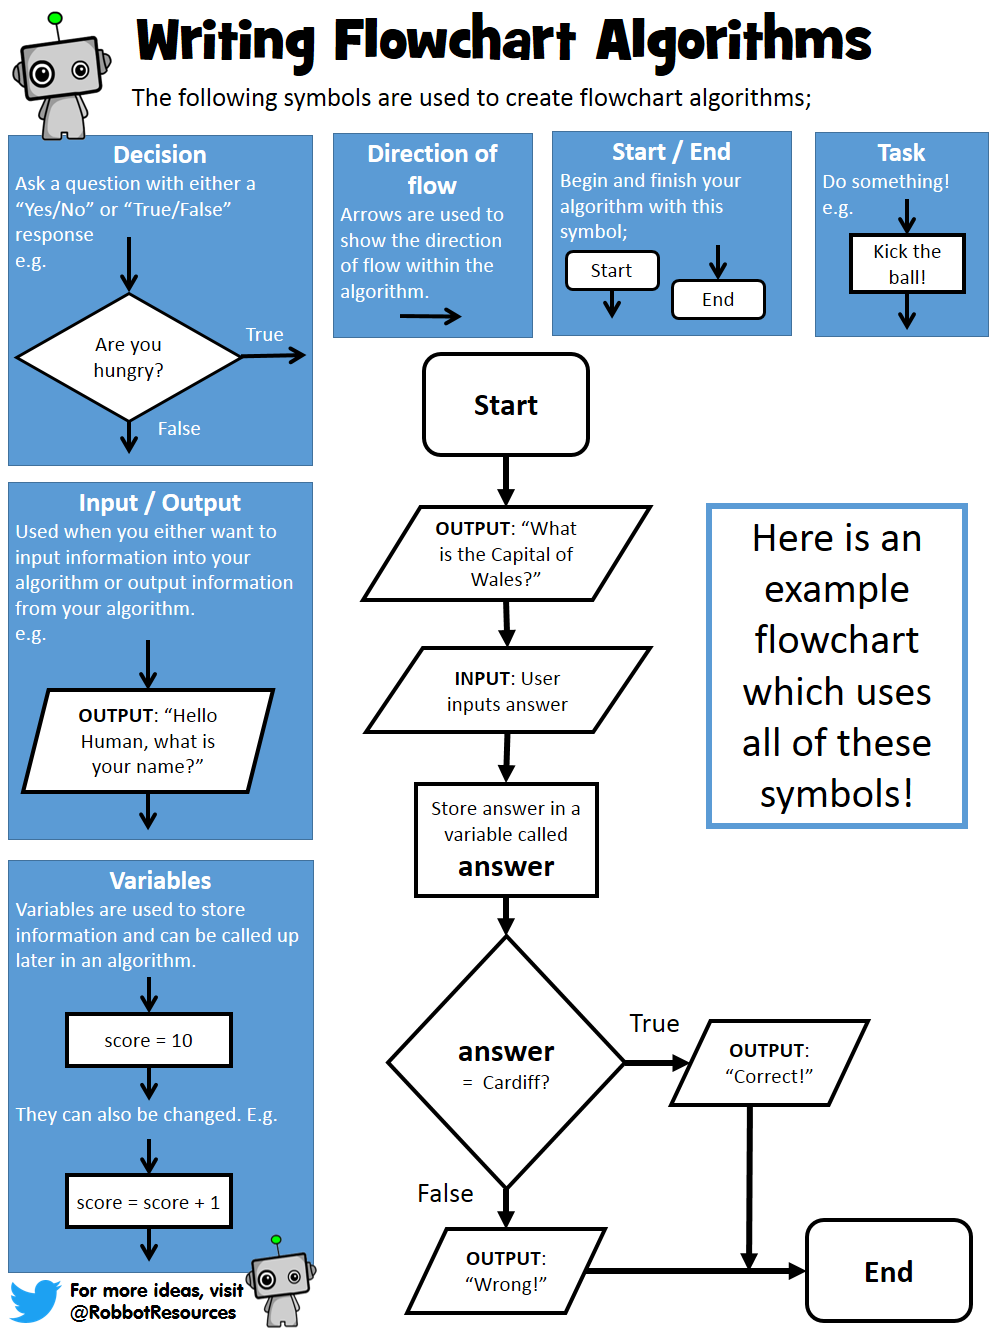 How to Write Algorithms - Flowcharts  Teaching Resources